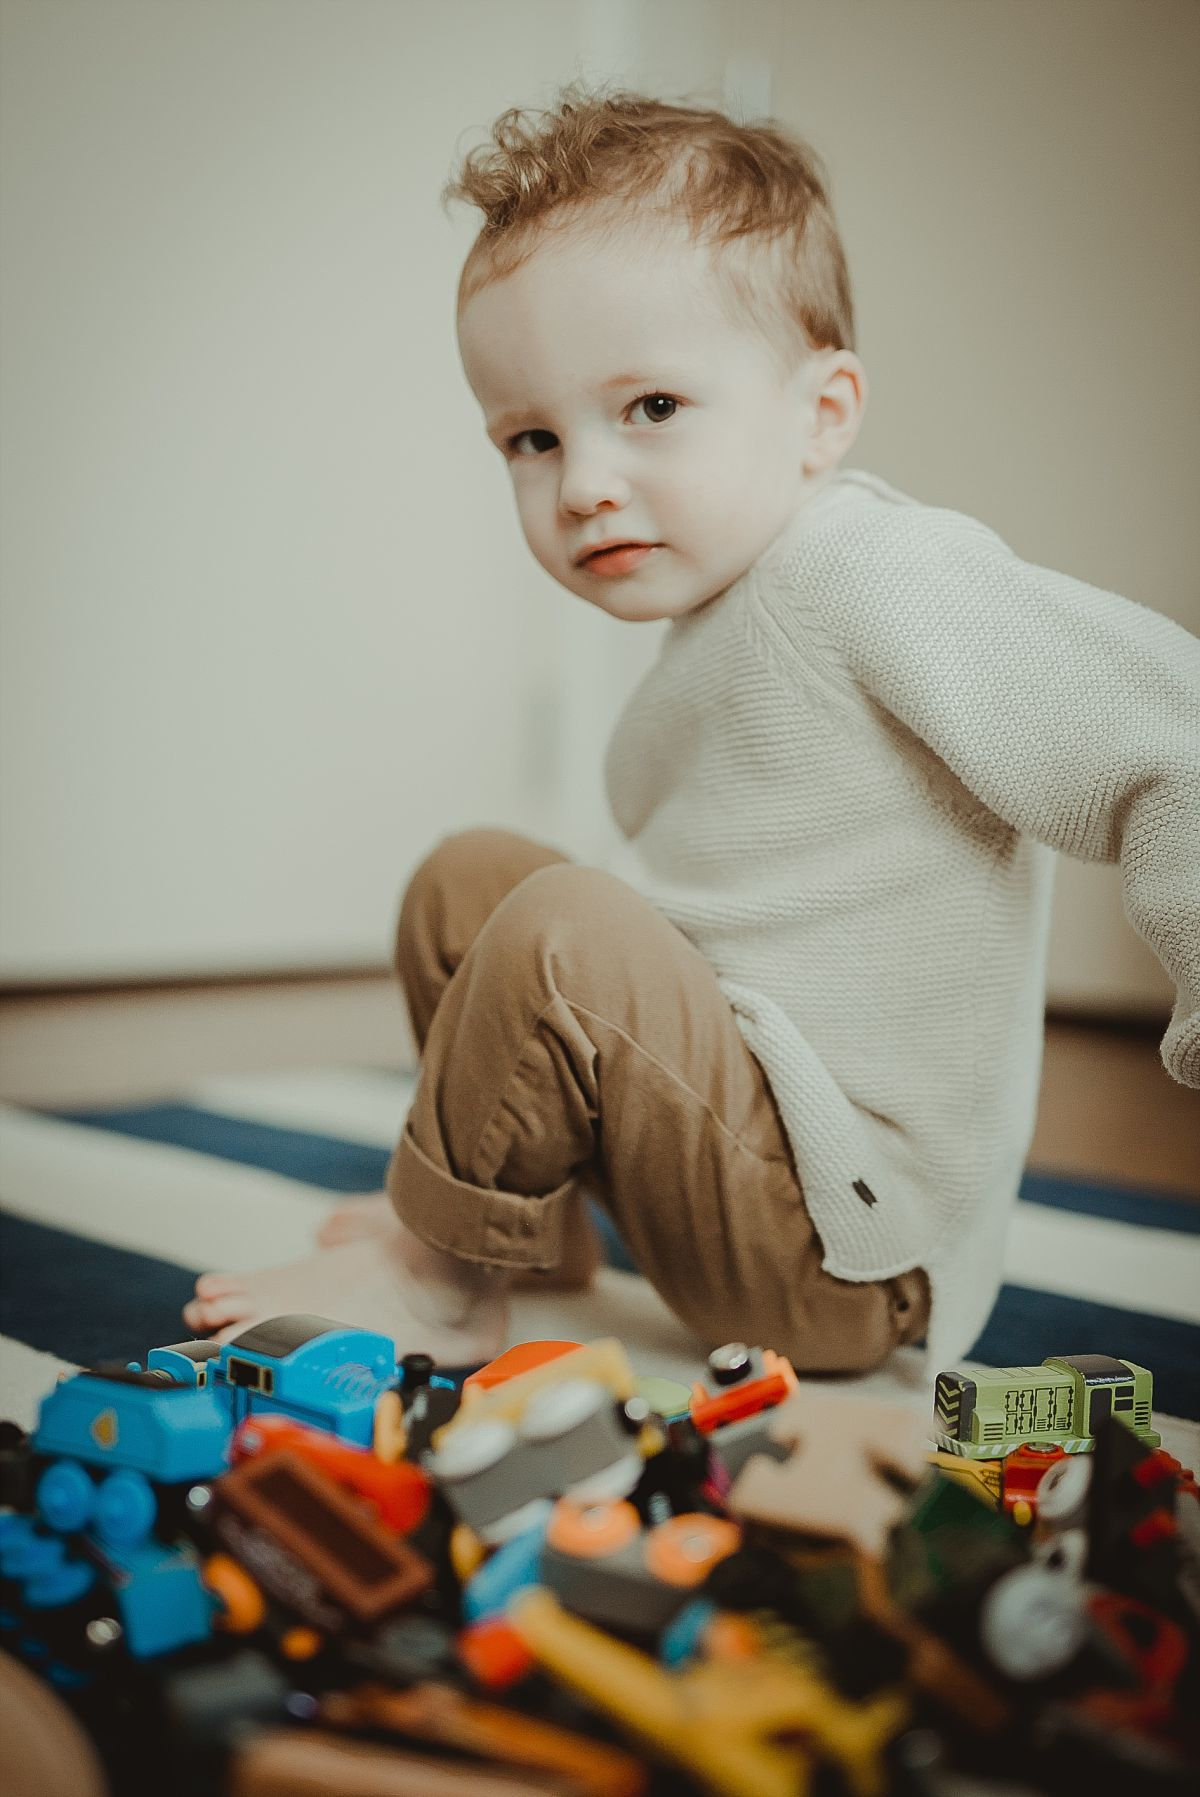 portrait of toddler in his room among a pile of toys. photographed by krystil mcdowall photography